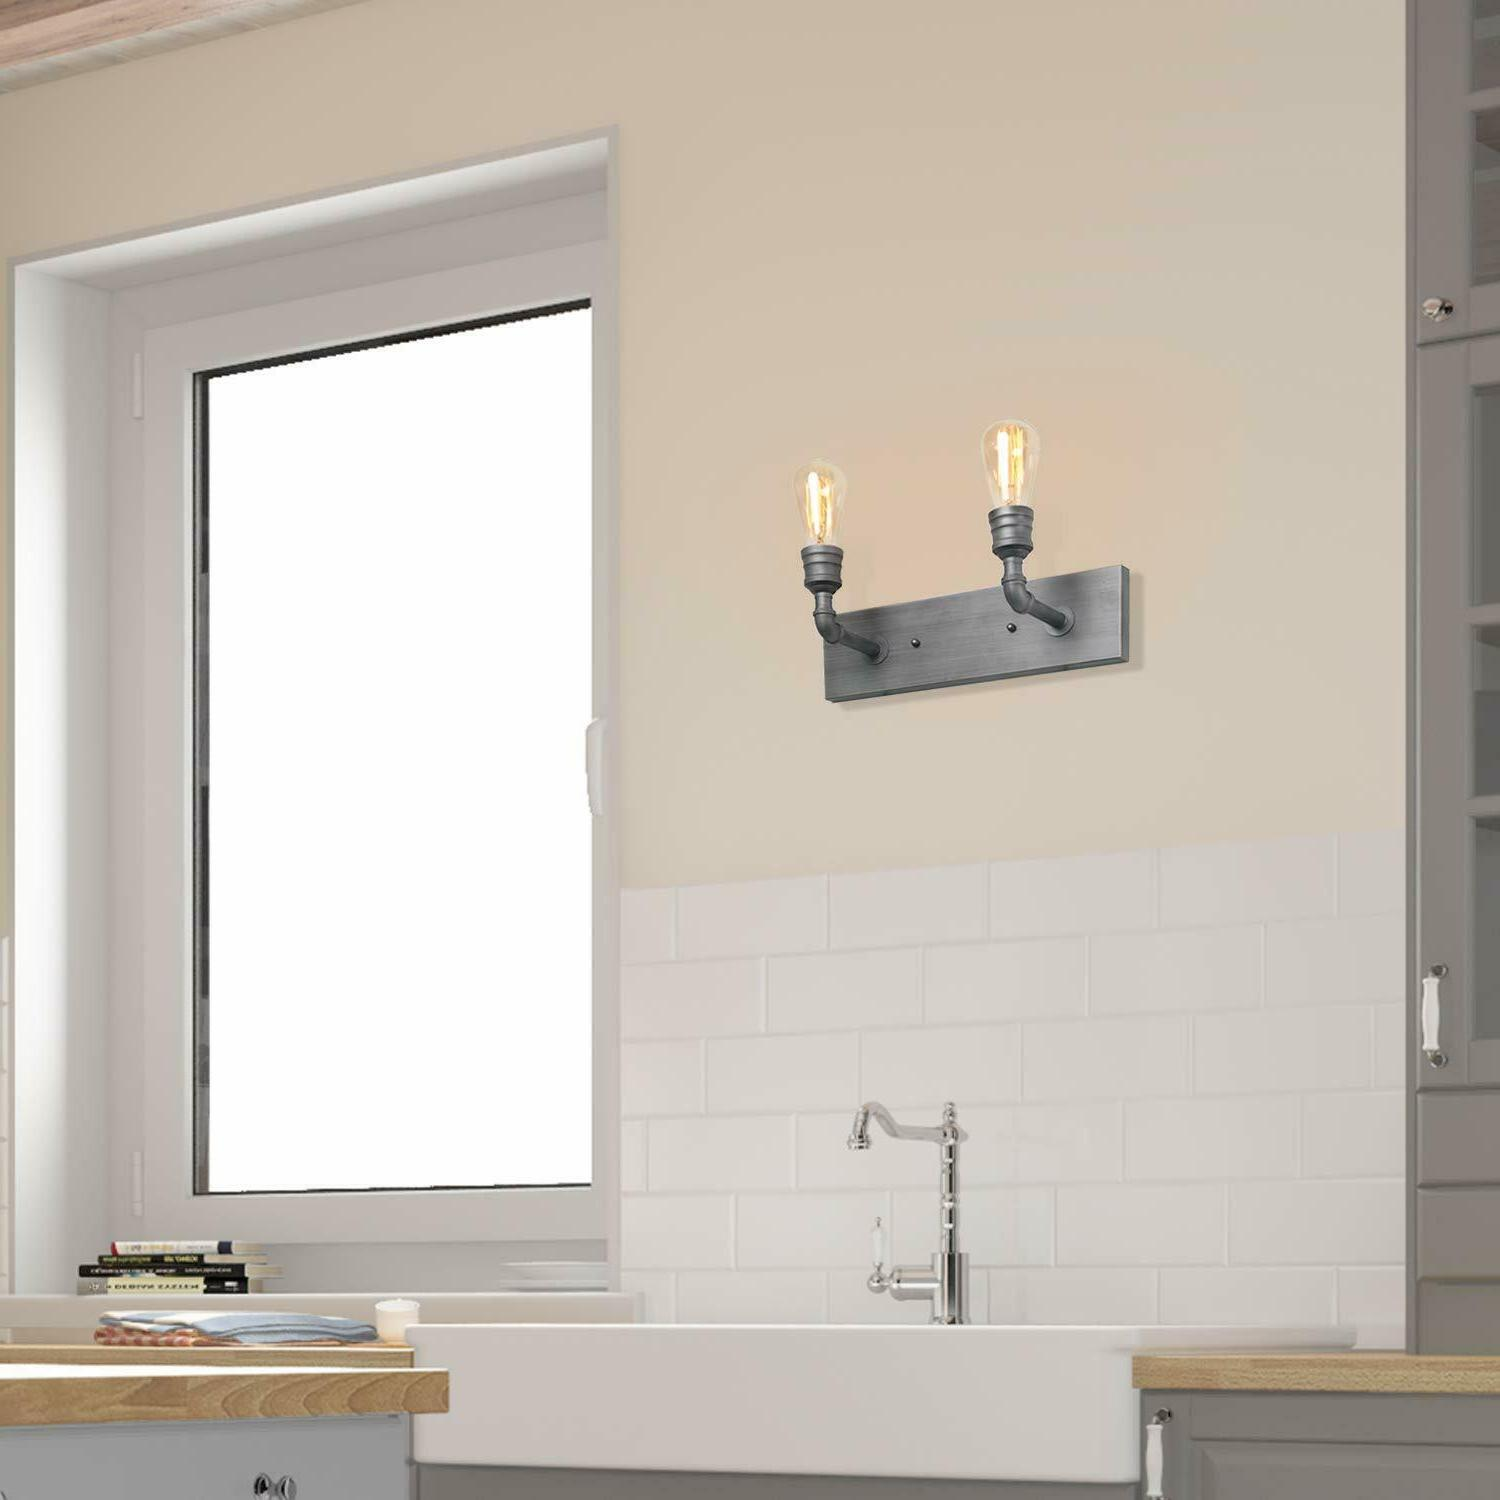 2-Light Sconce Bathroom Wall Lamp Industrial